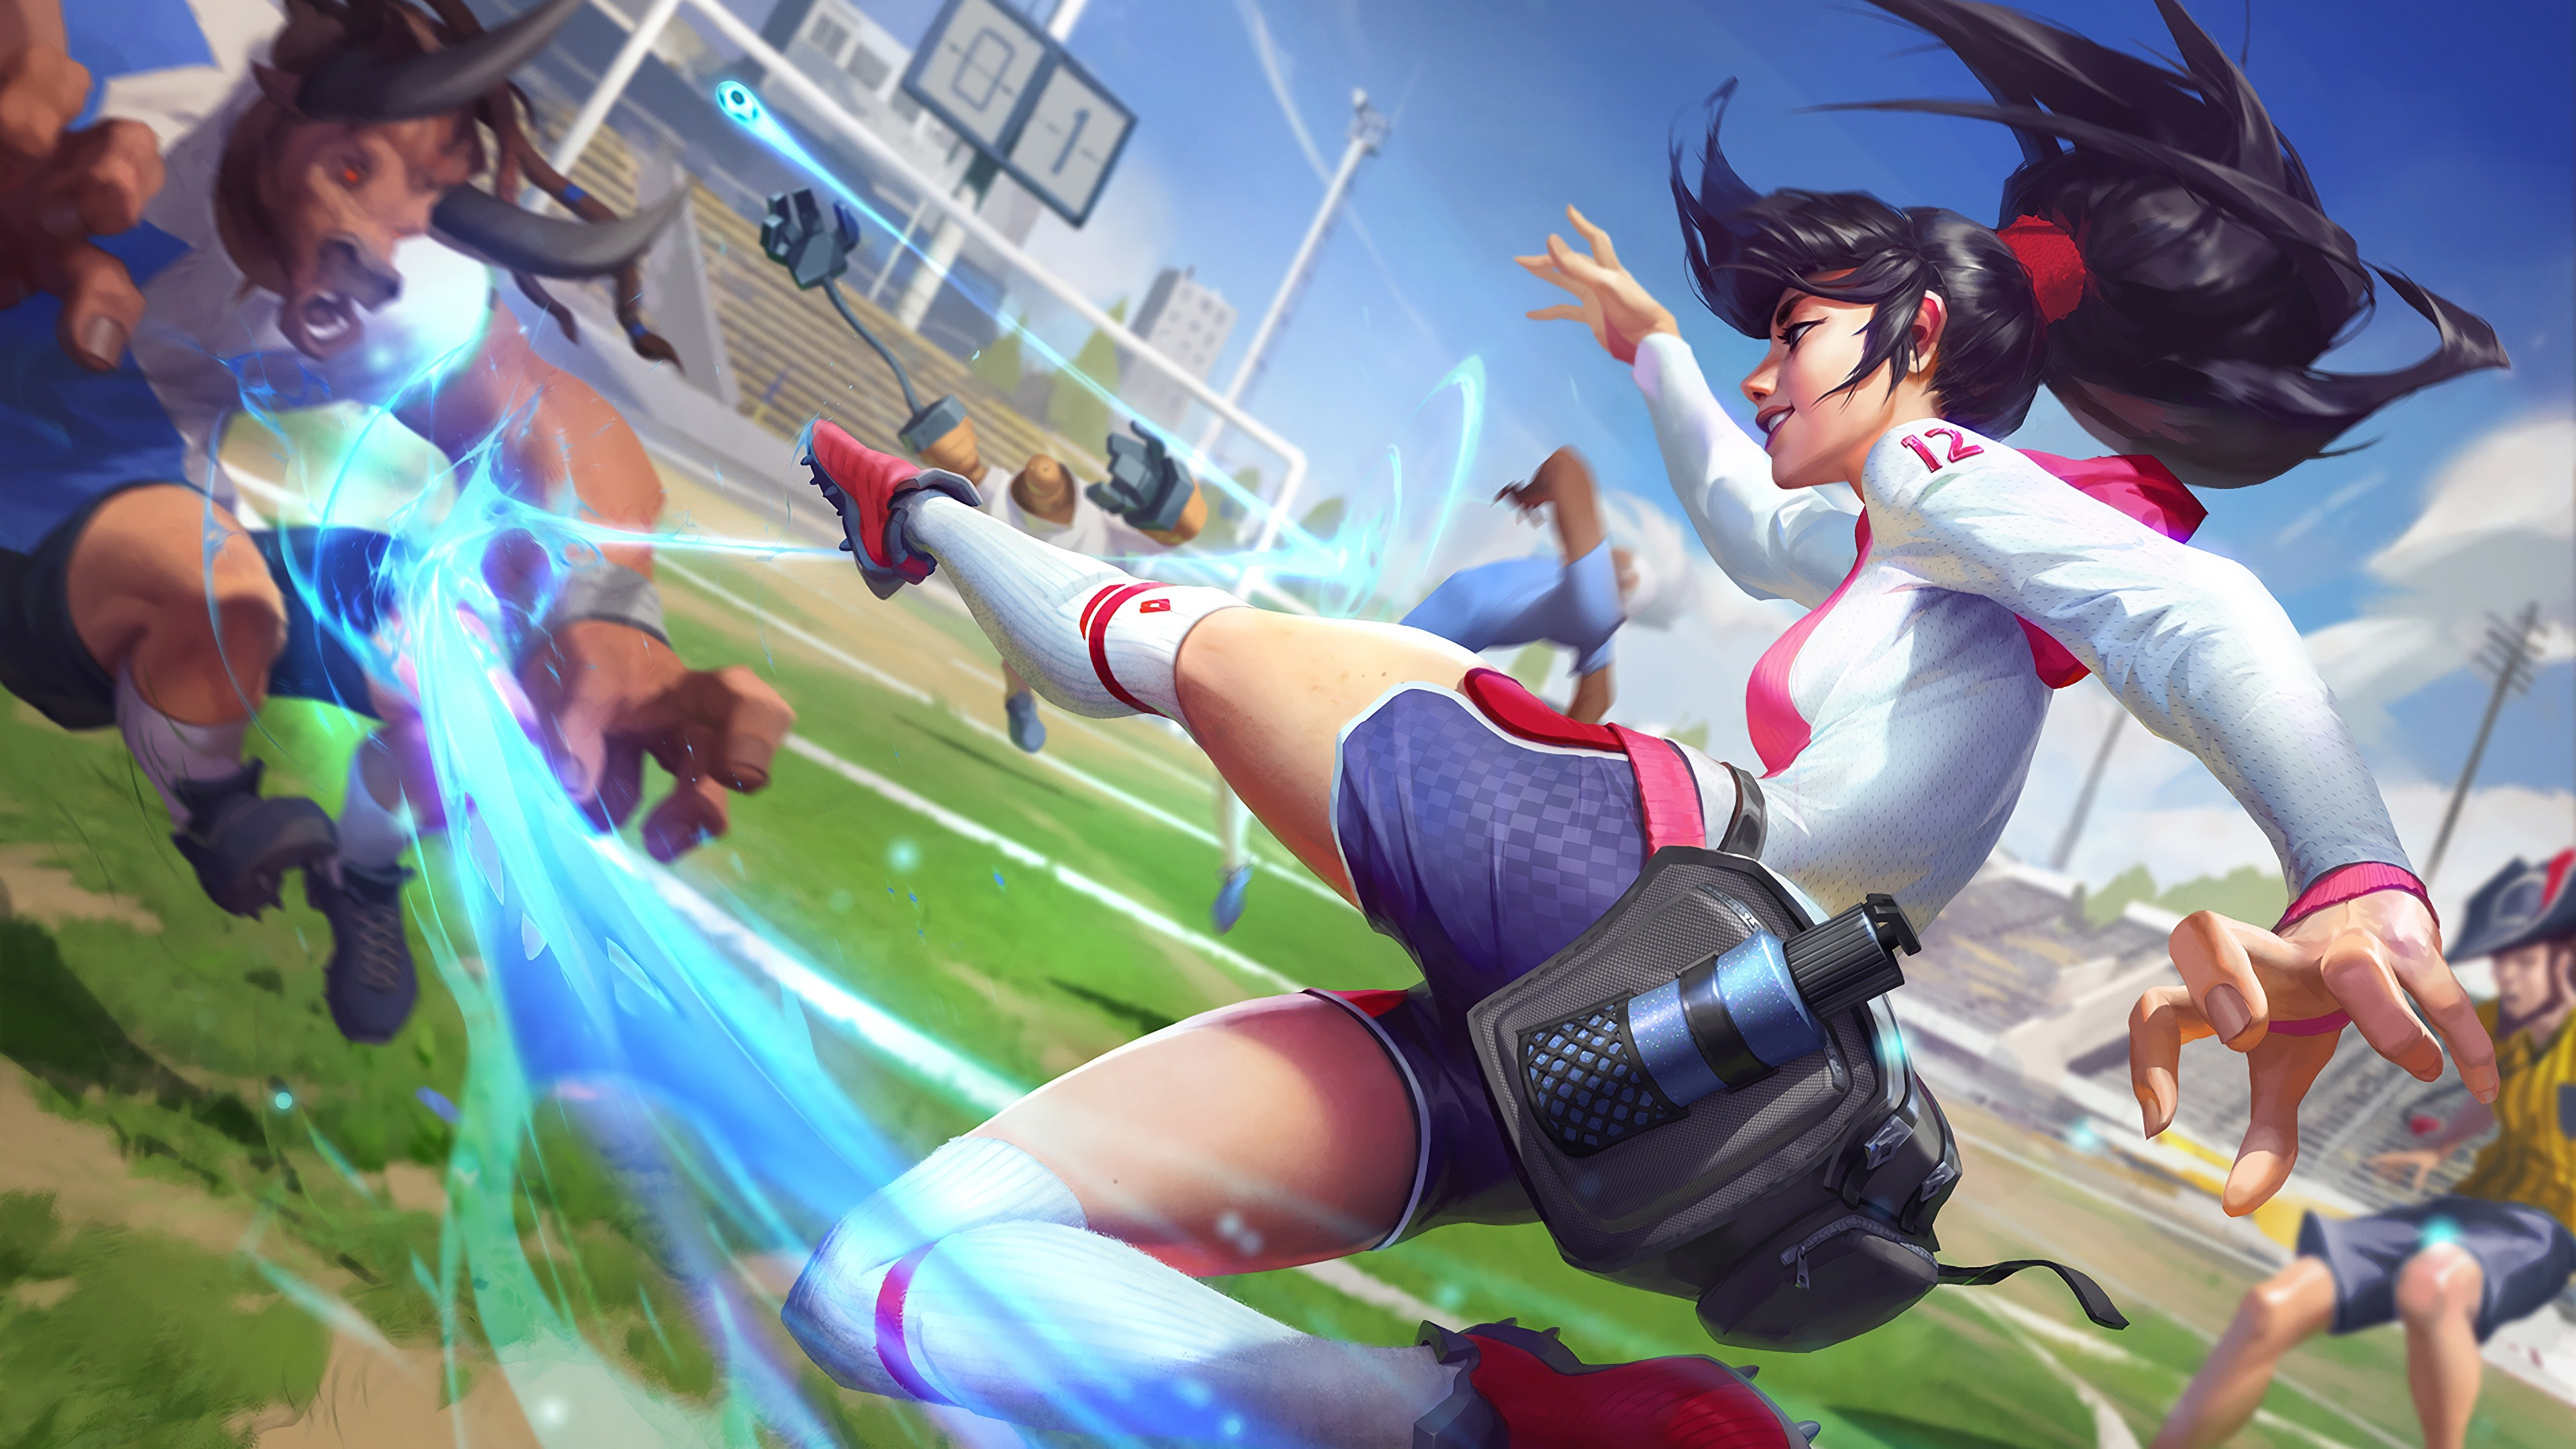 Wallpaper Akali Football League Of Legends 3840x2160 Uhd 4k